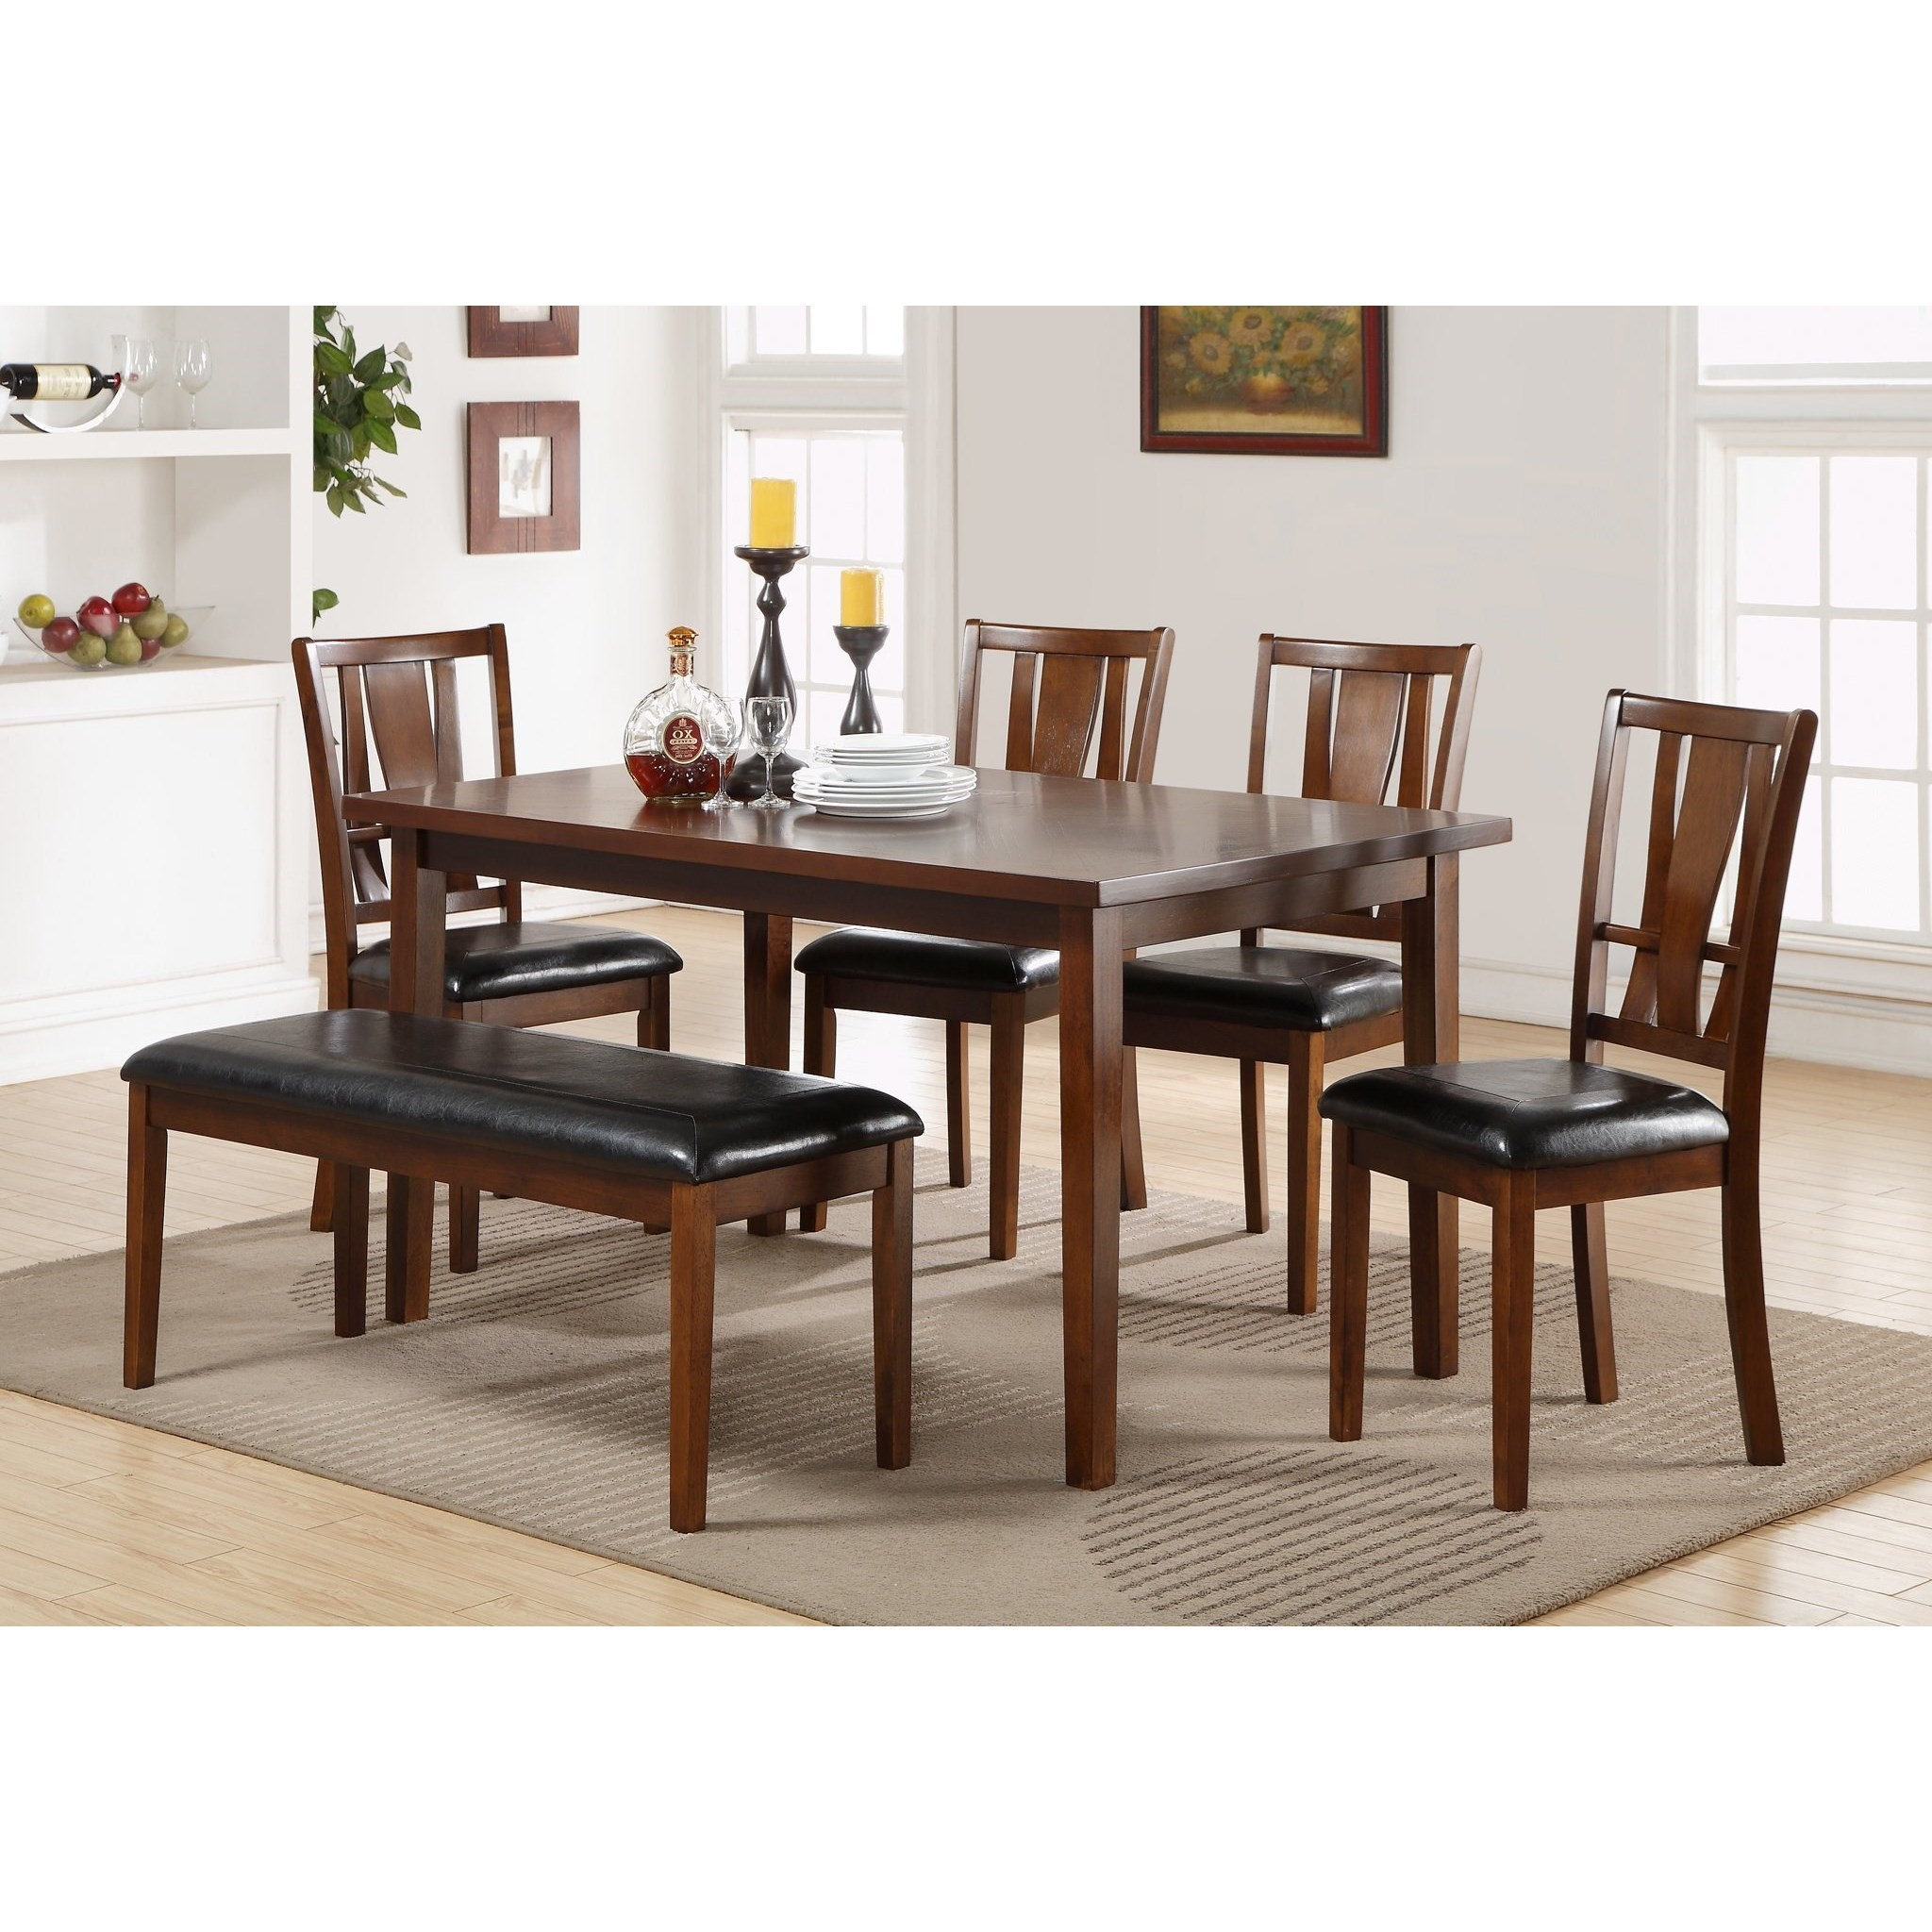 Dixon Dining Set with Bench by New Classic at Beds N Stuff